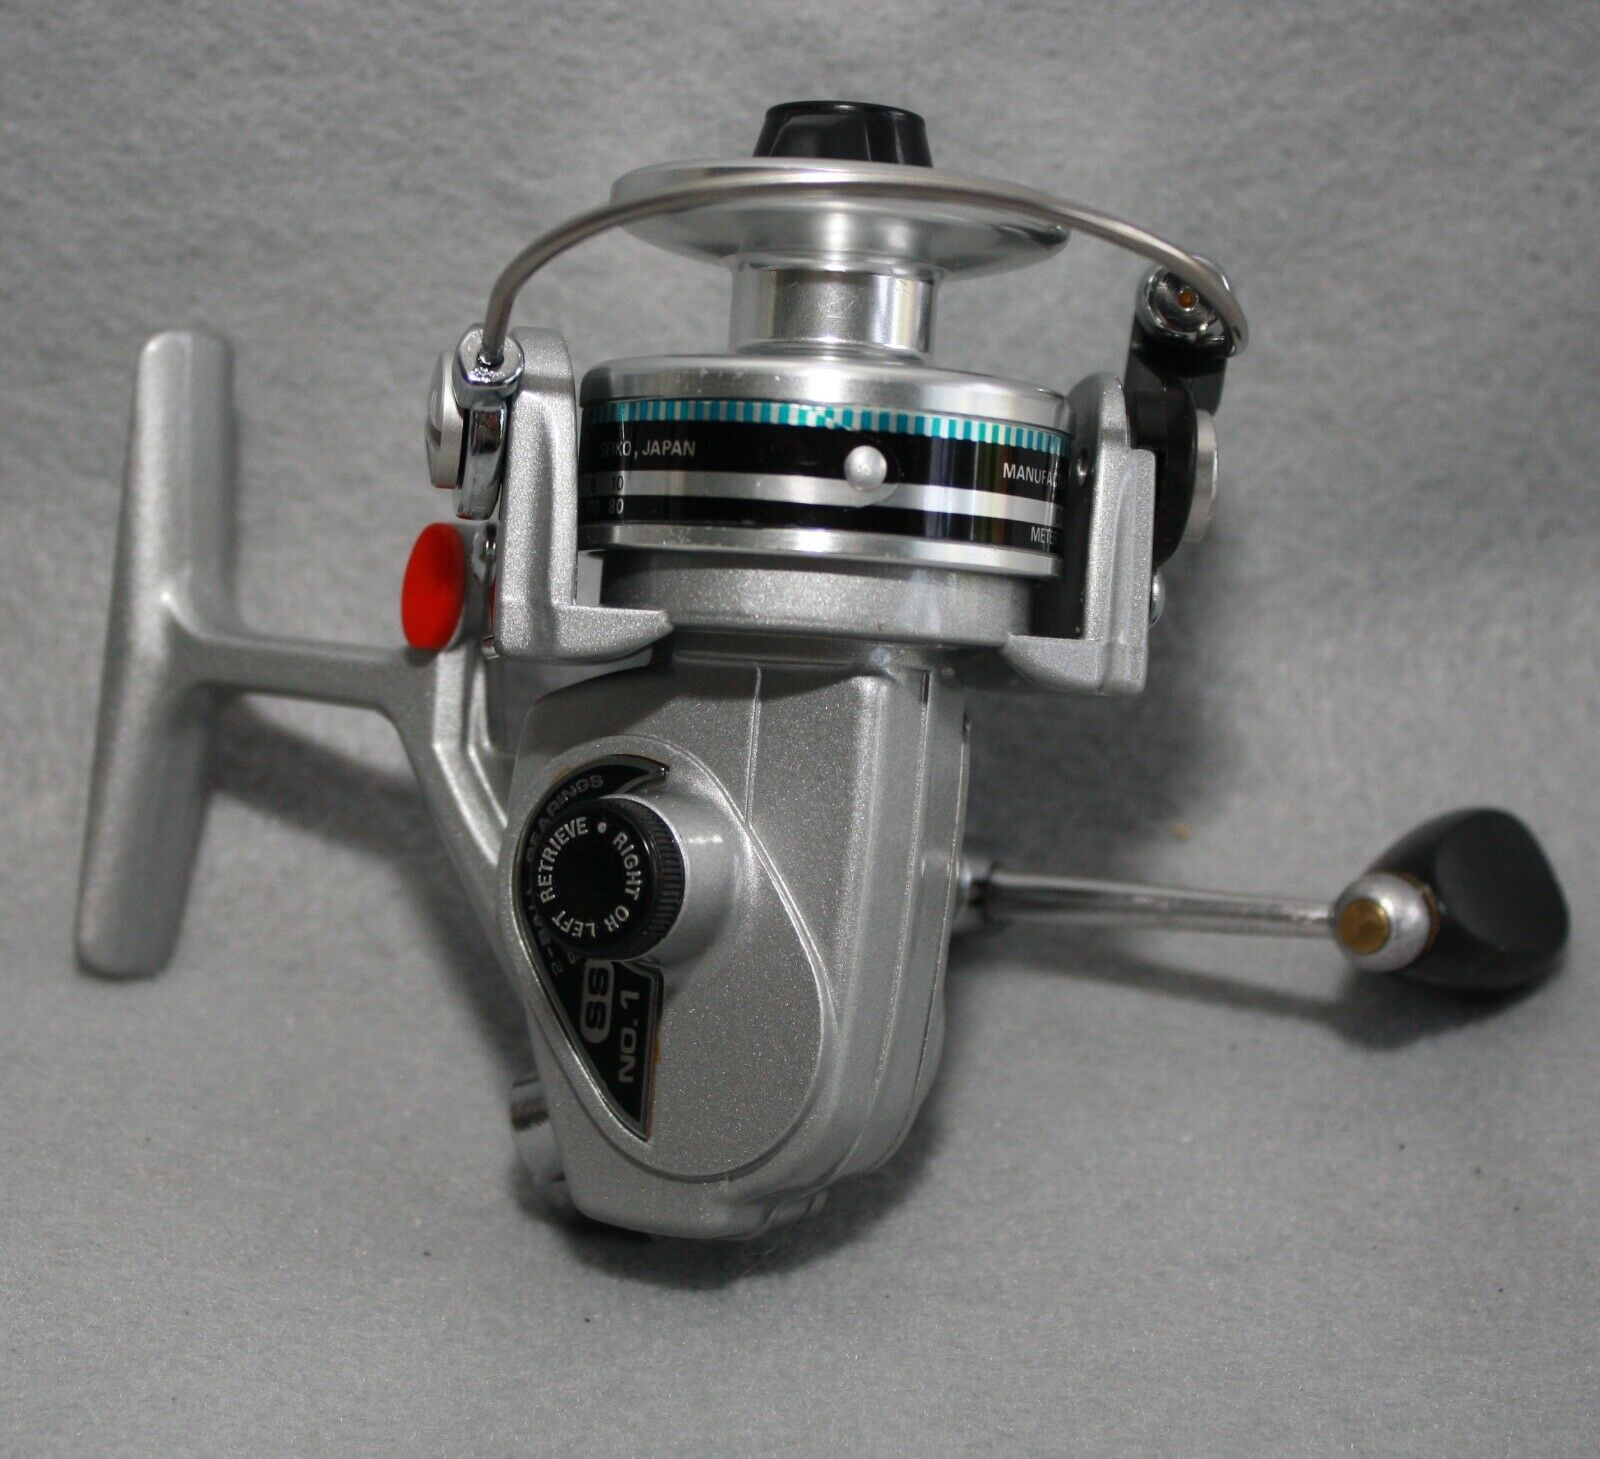 Daiwa SS No. 1 Super Sport Ultralight Spinning Reel Made in Japan